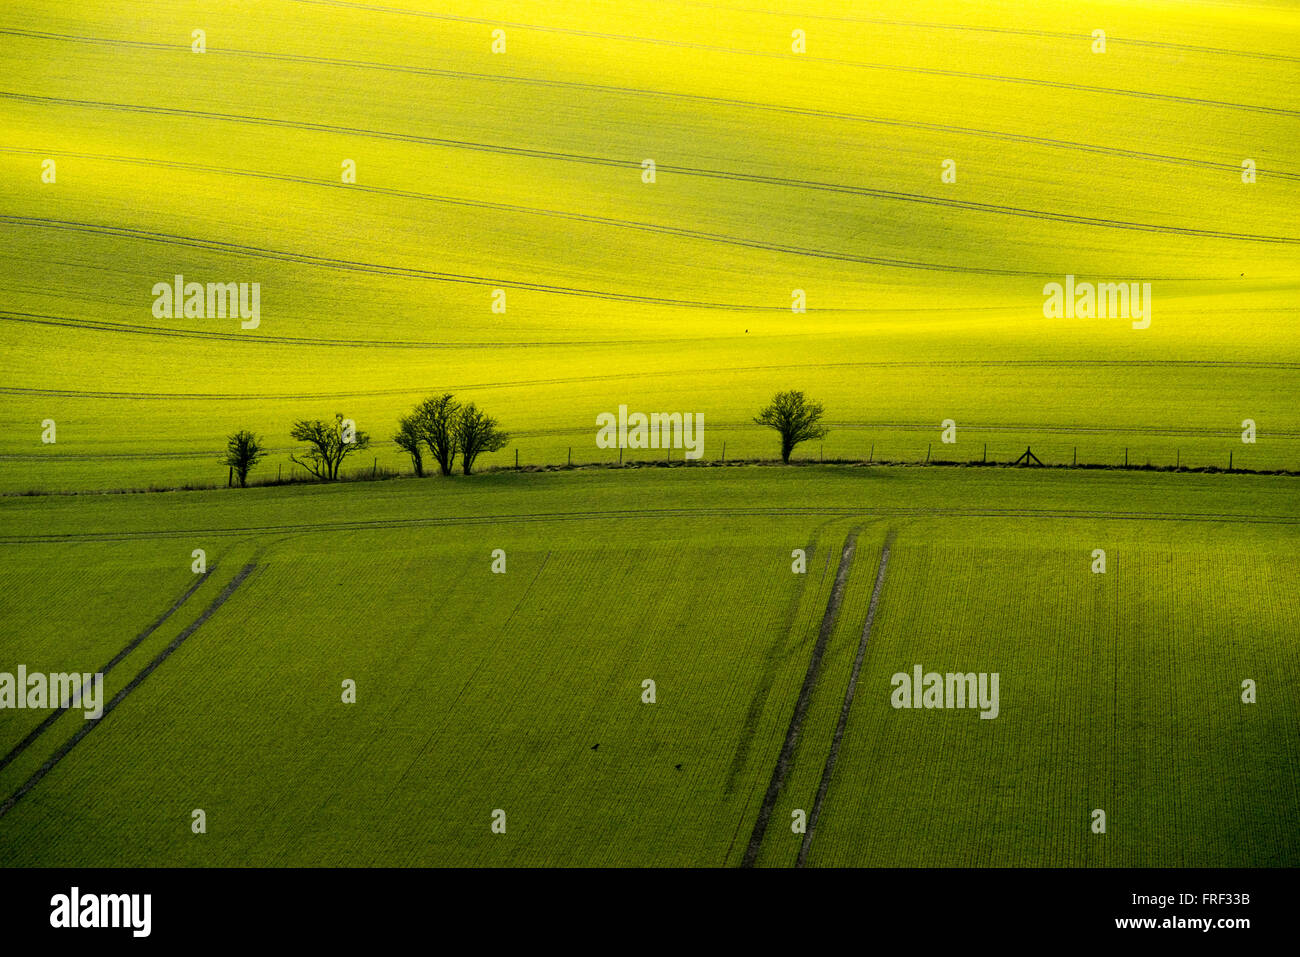 Telephoto shot of fields of winter wheat in cloud shaded sunlight, taken from a high hill 'Ivinghoe Beacon' - Stock Image